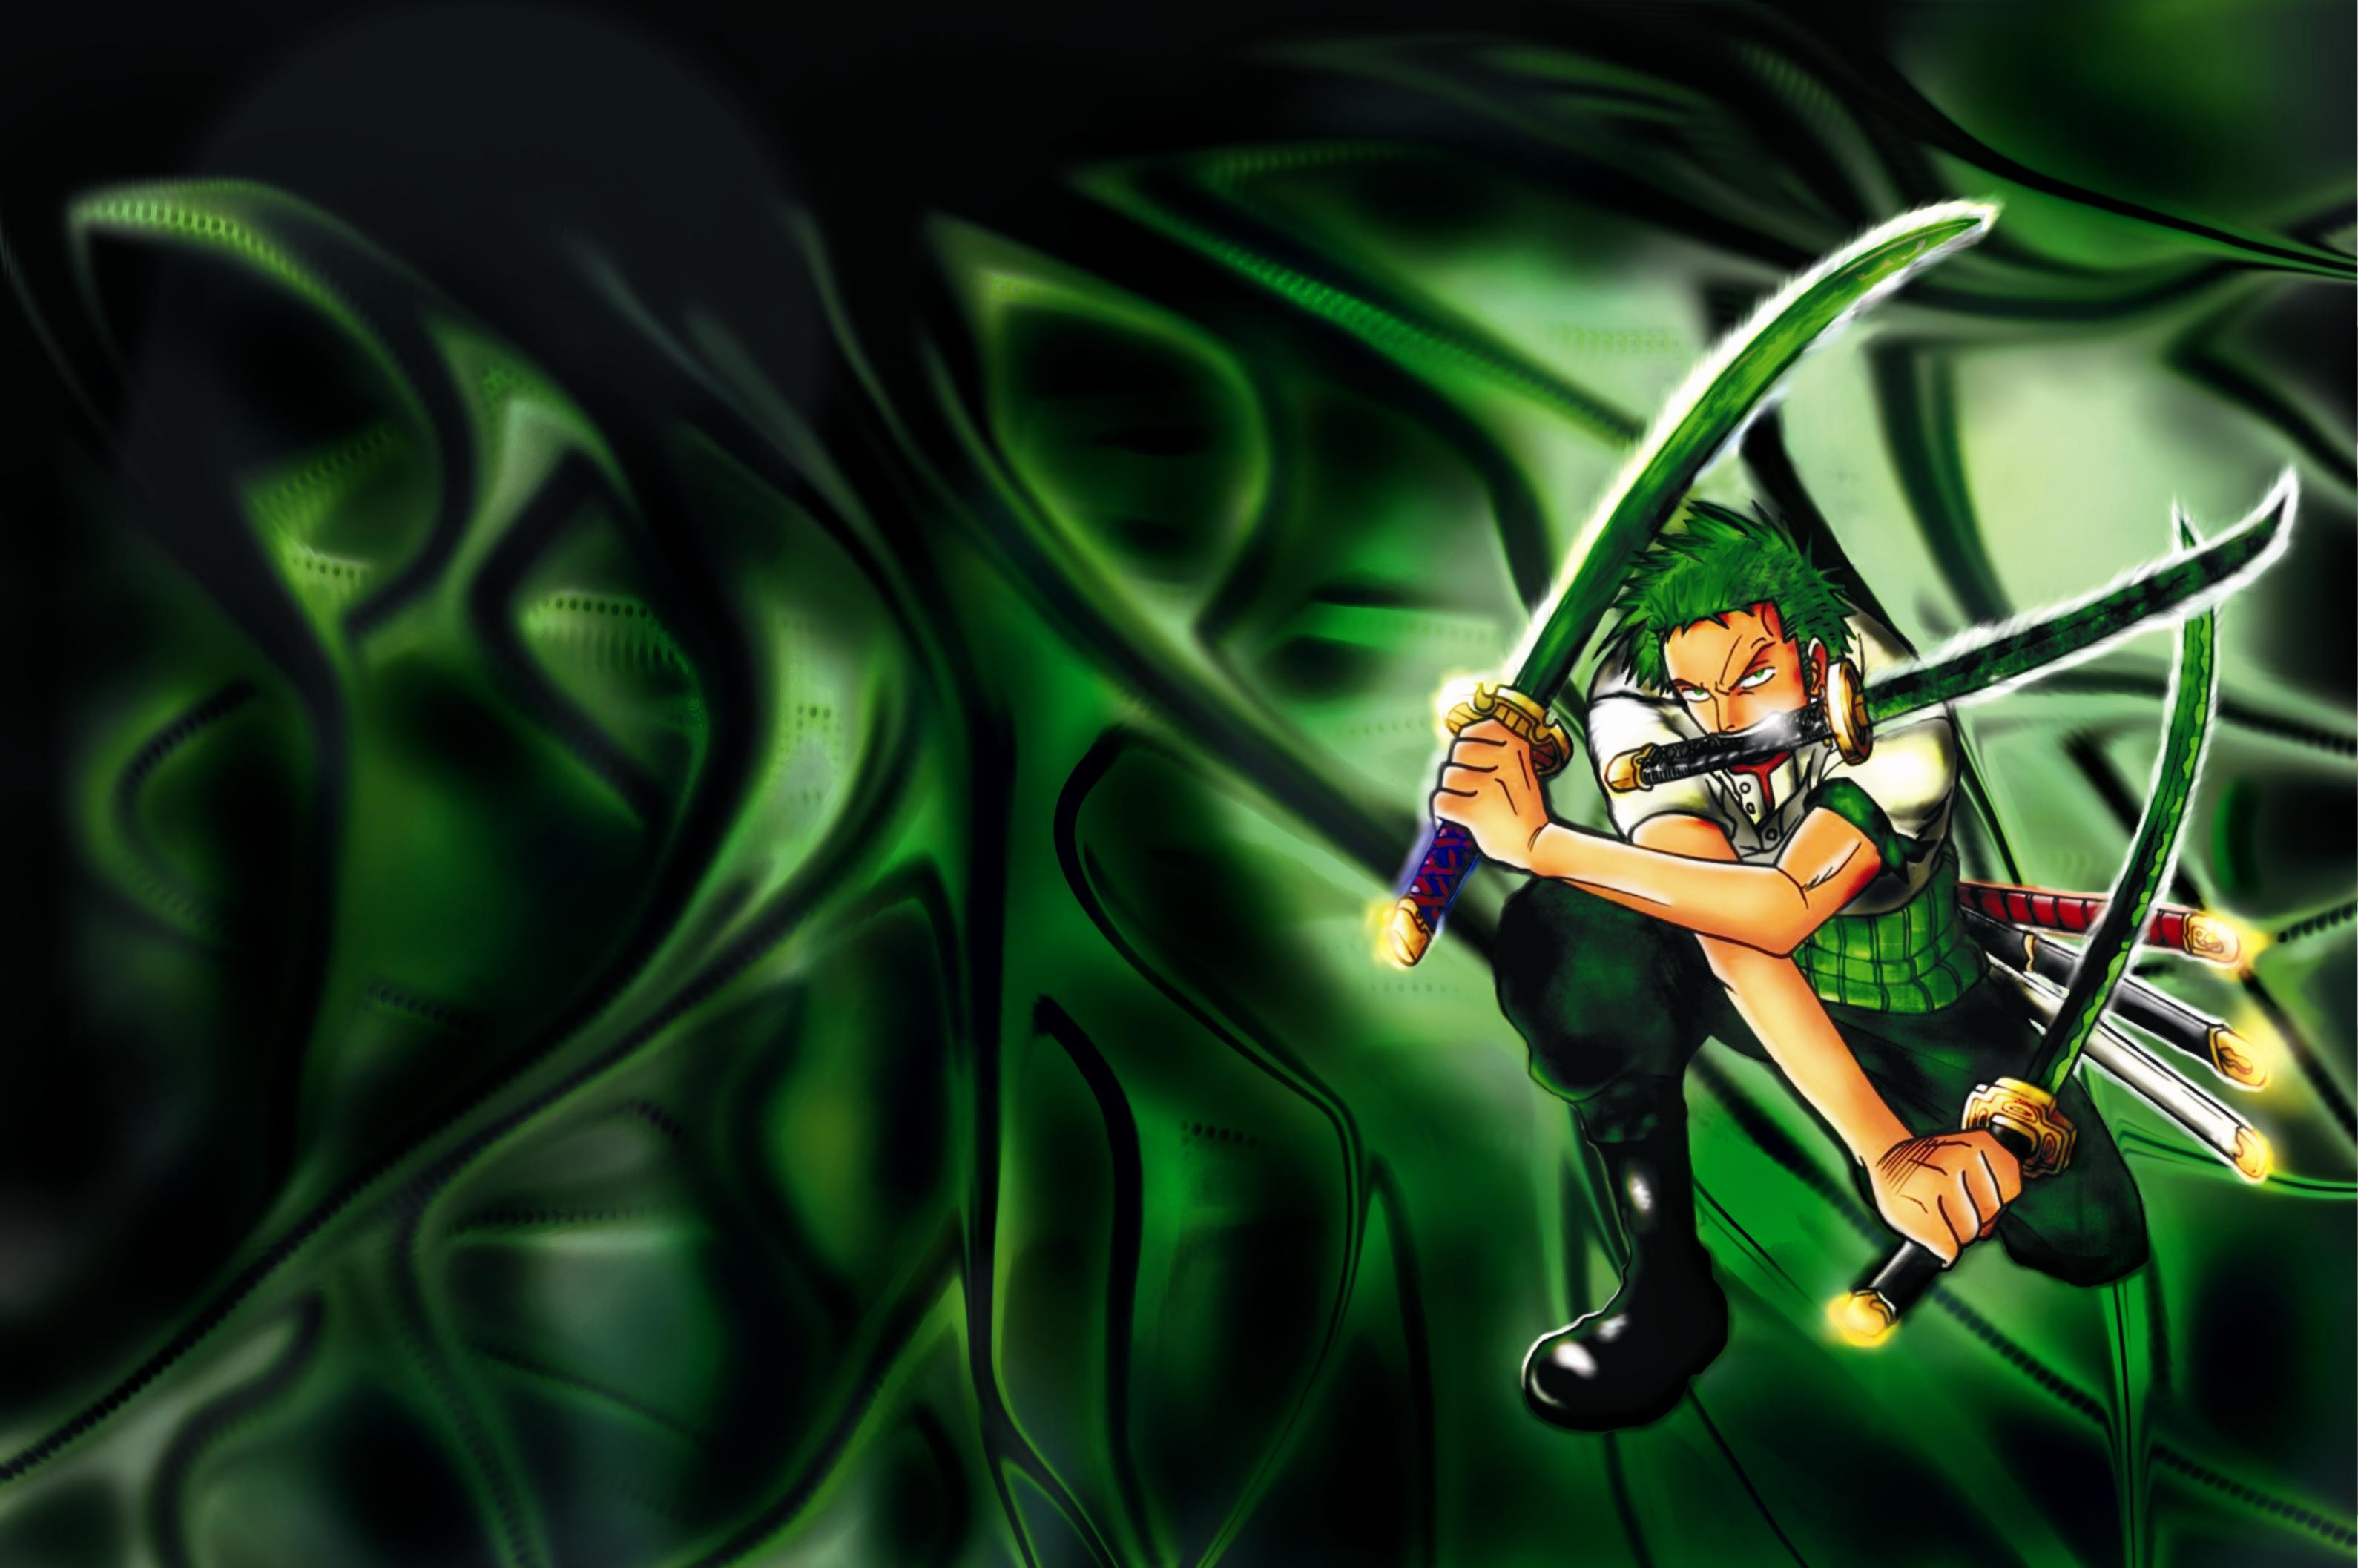 One Piece Zoro Wallpaper 69 Images